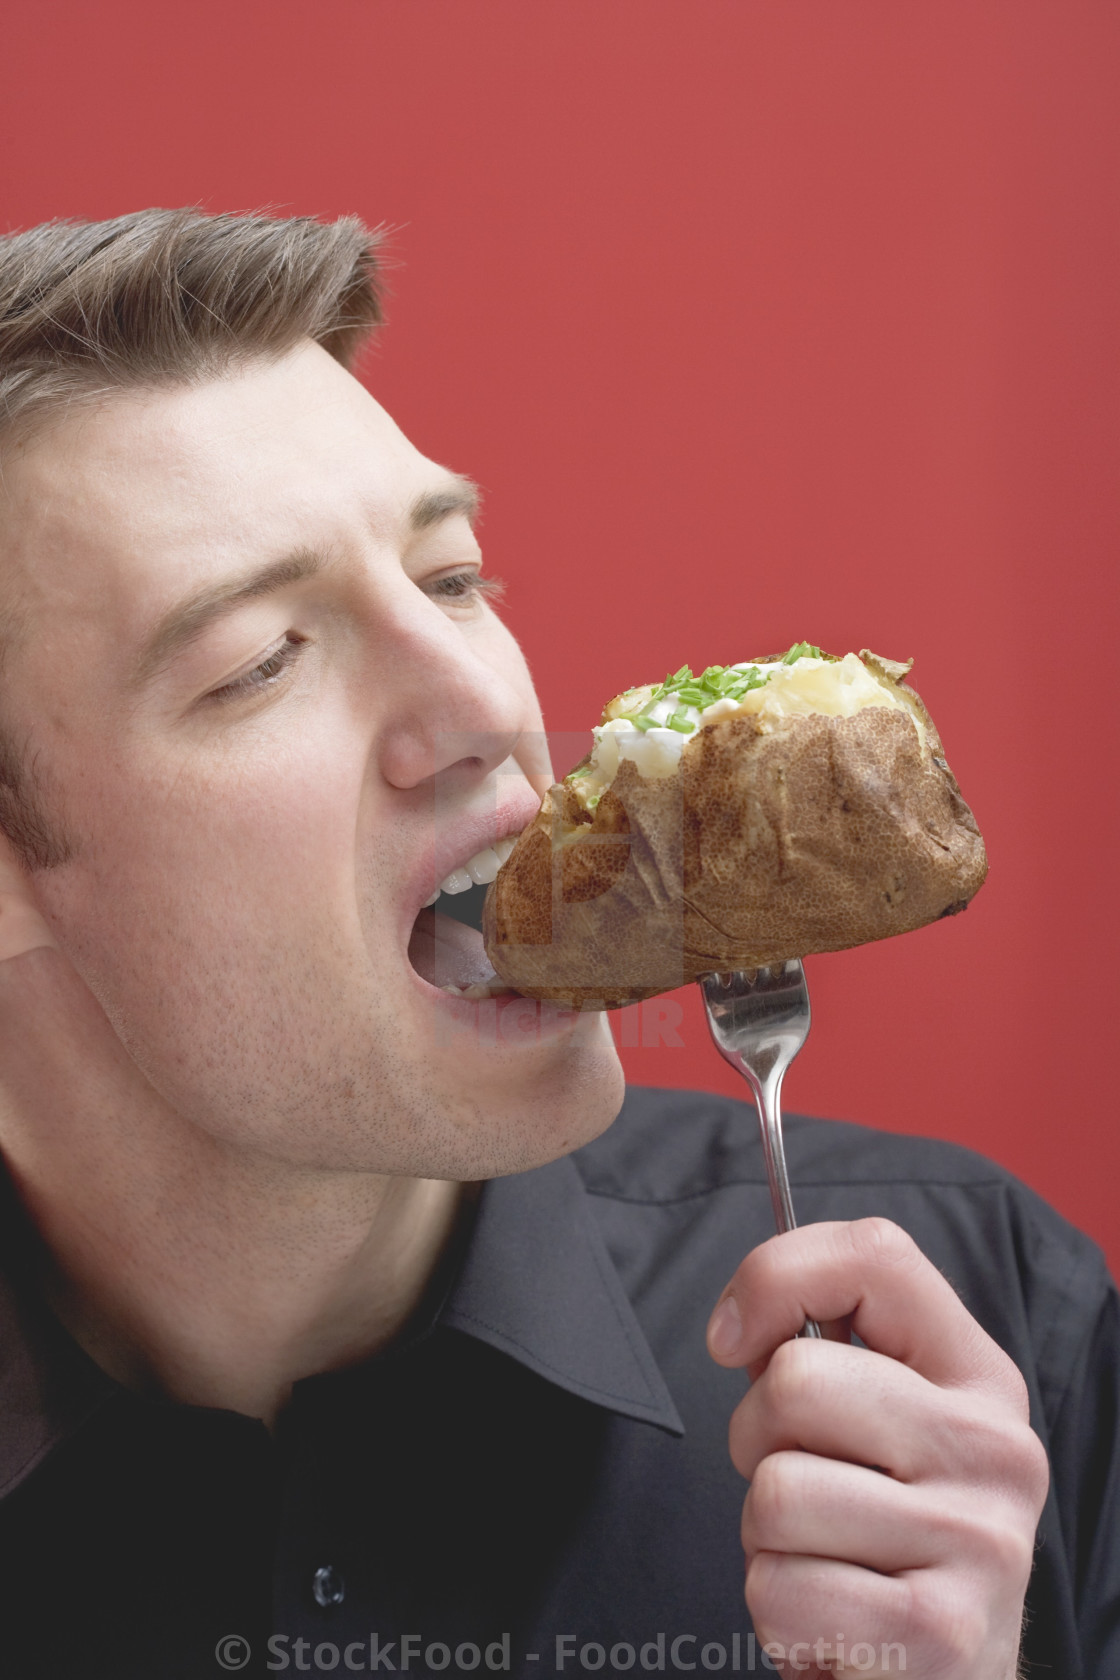 Man eating baked potato - License, download or print for